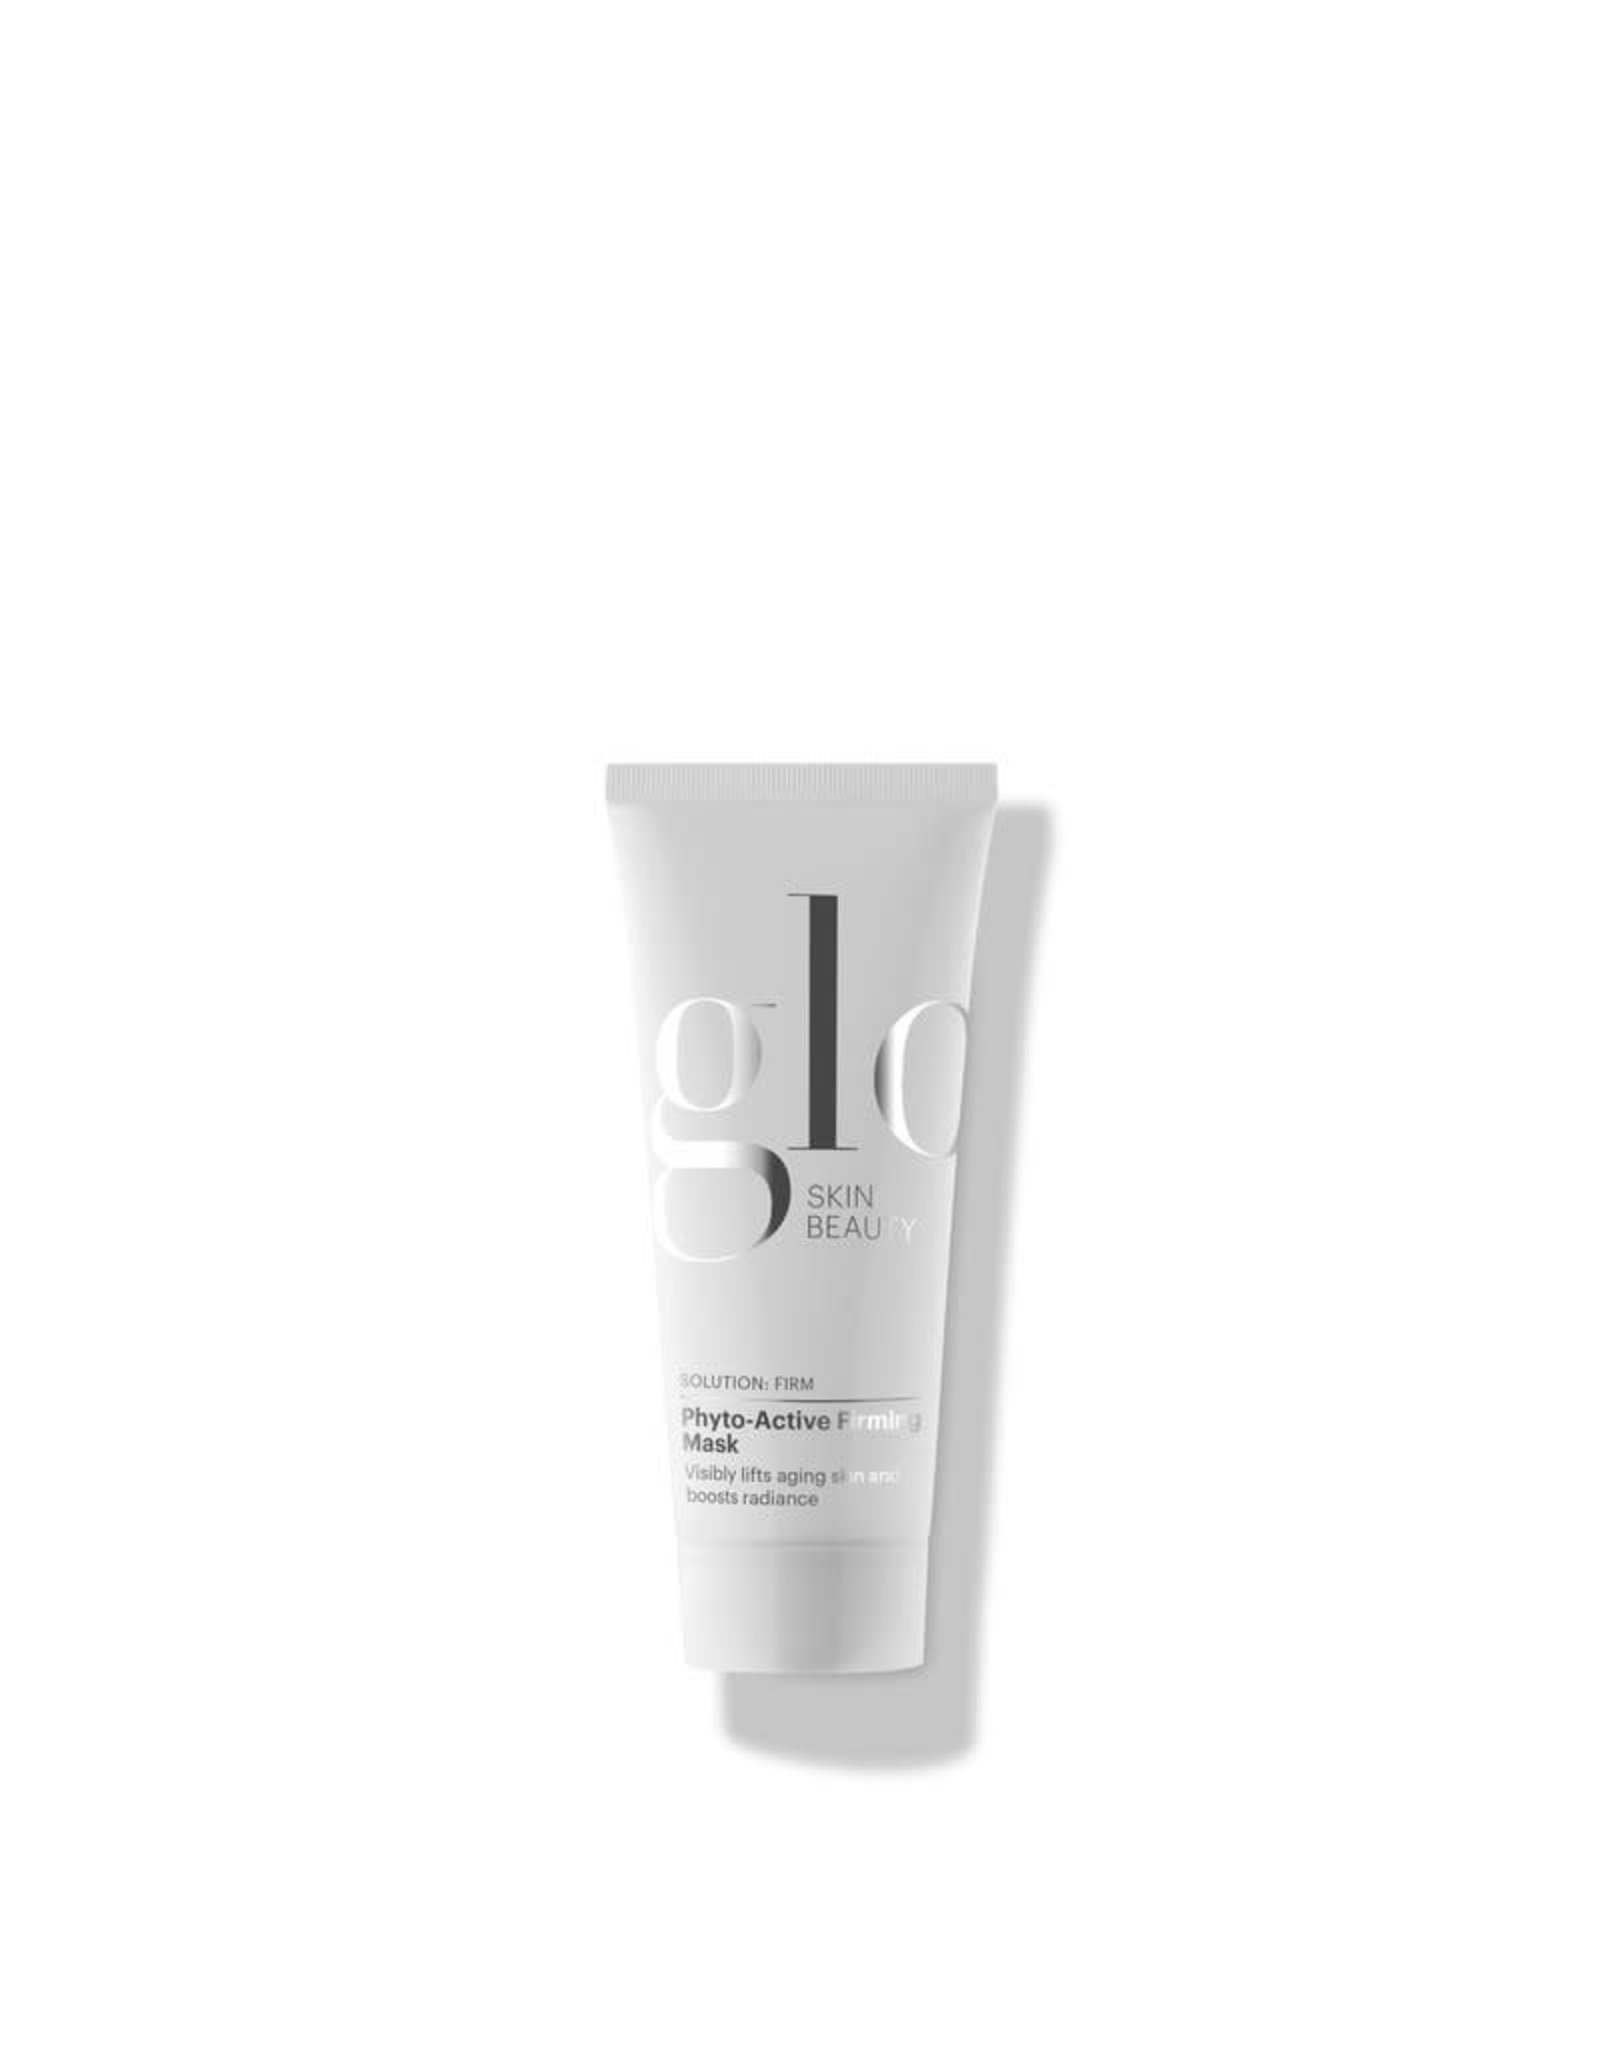 Glo Skin Beauty Phyto-Active Firming Mask